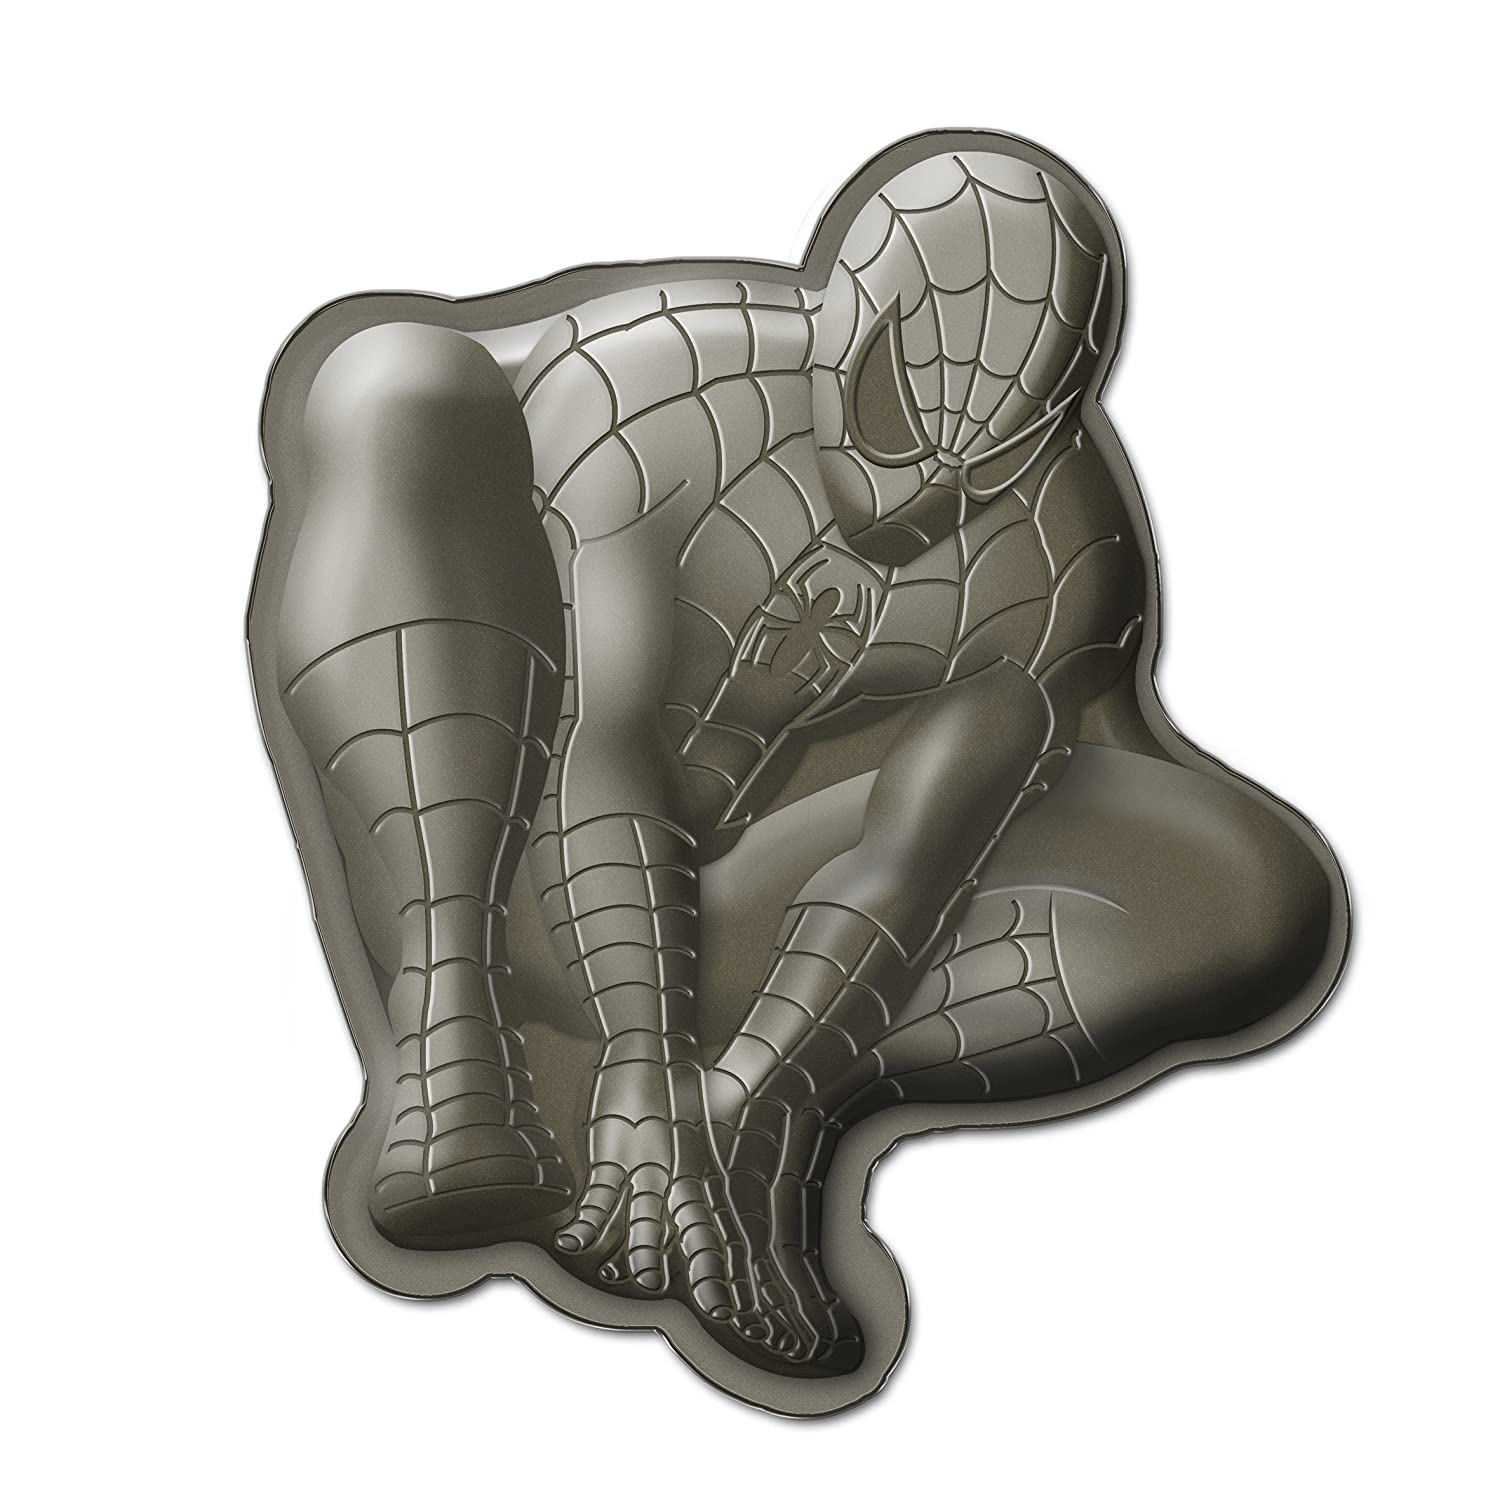 p:os 20145 Spiderman Backform mit Papiereinleger